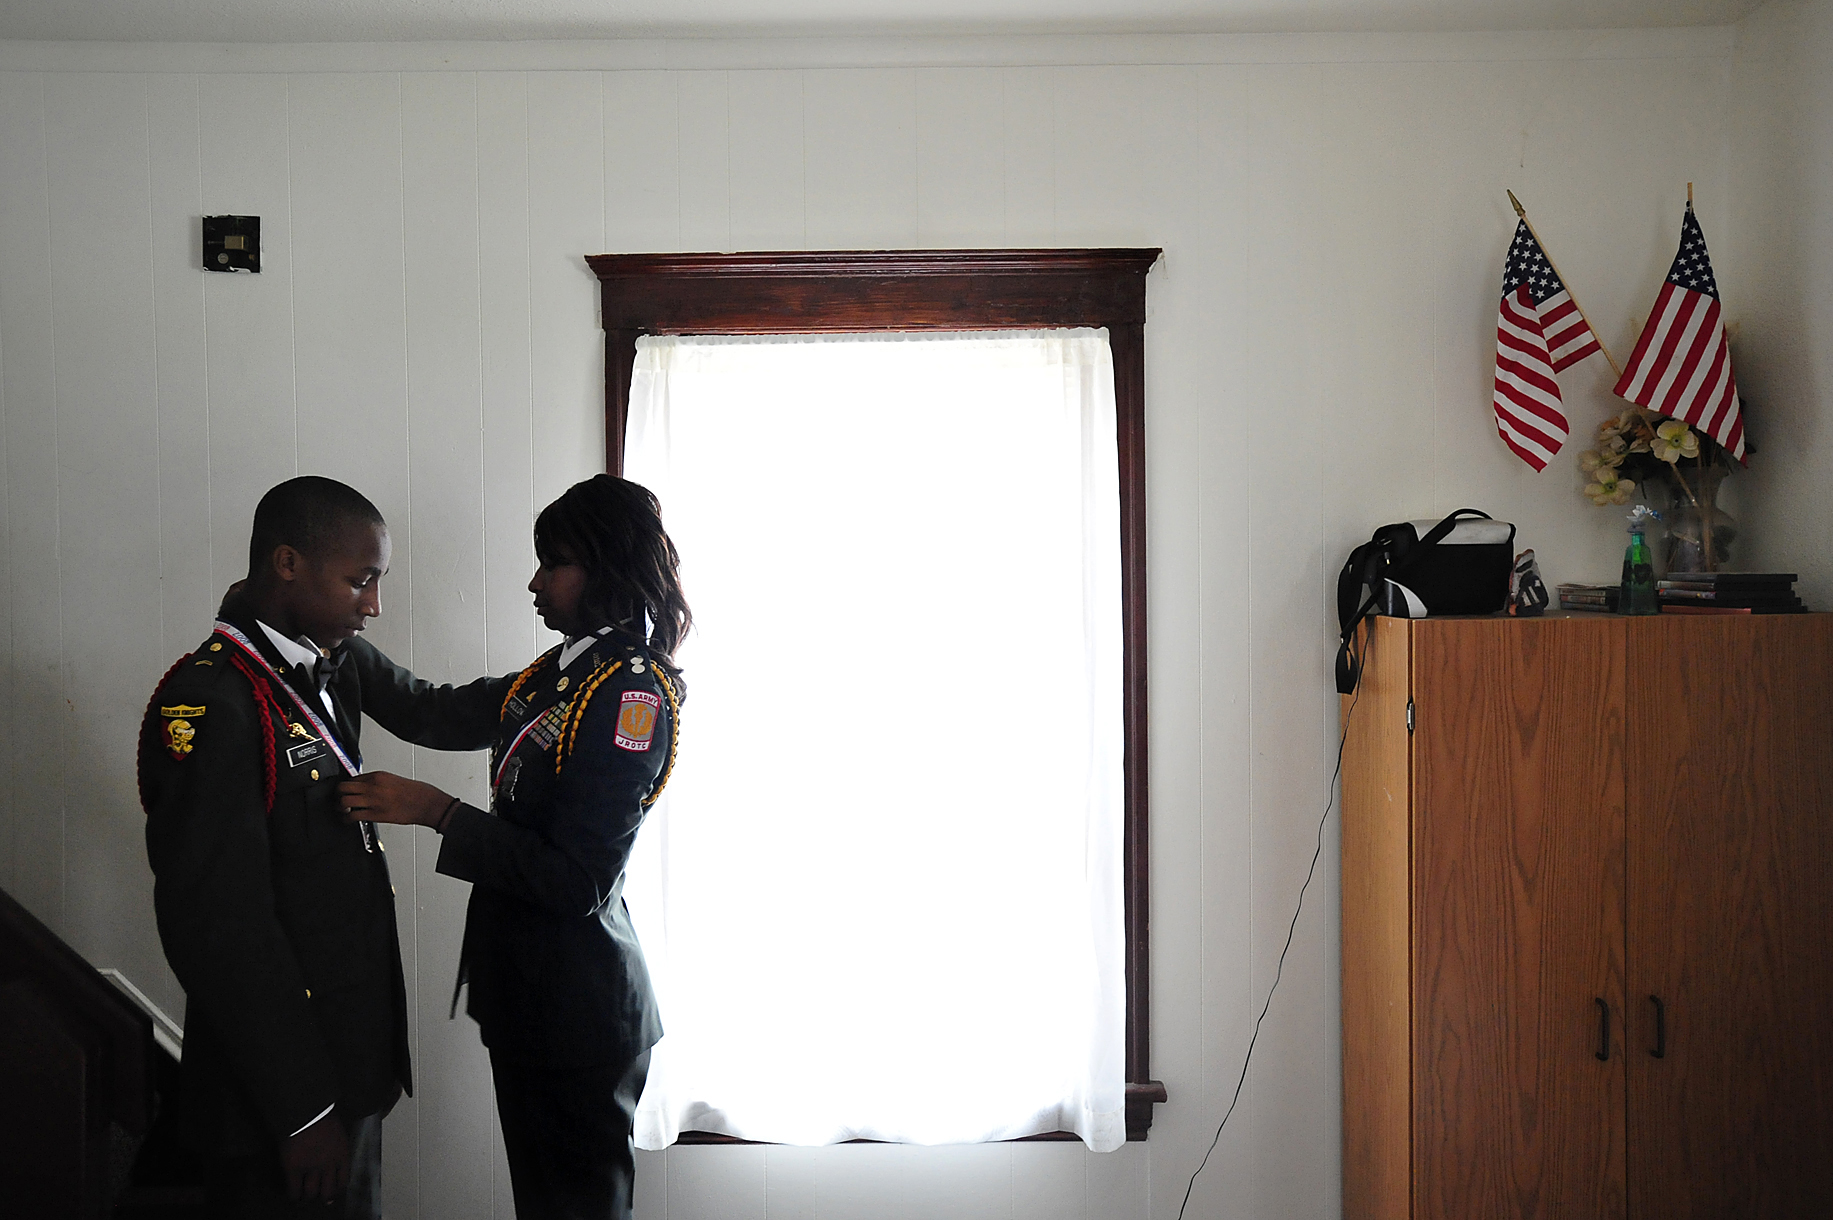 First Lt. Leticia Holloway, right, situated a medal on her brother, Cpl. Dyron Norris, as they prepared for the Army Junior ROTC annual military ball.